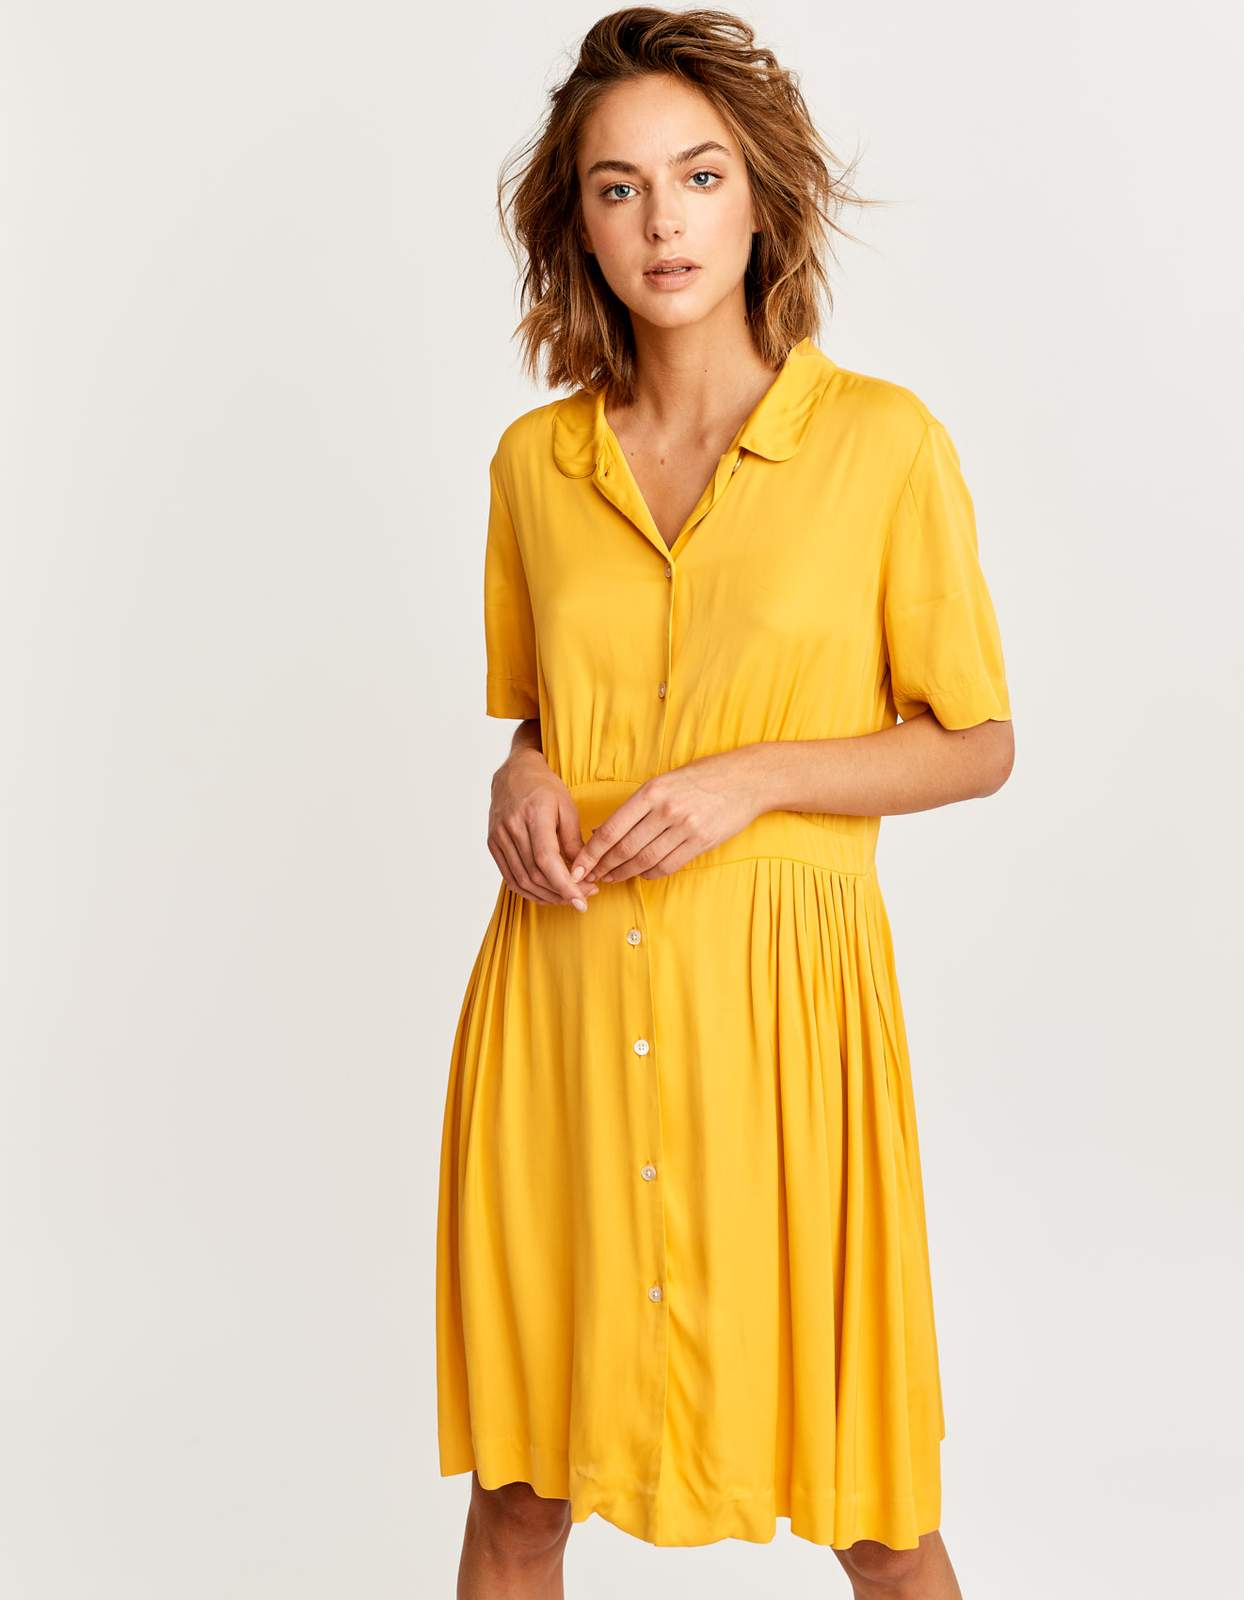 bellerose-dress-sorya-p1056-mangue_1600x1600.jpg